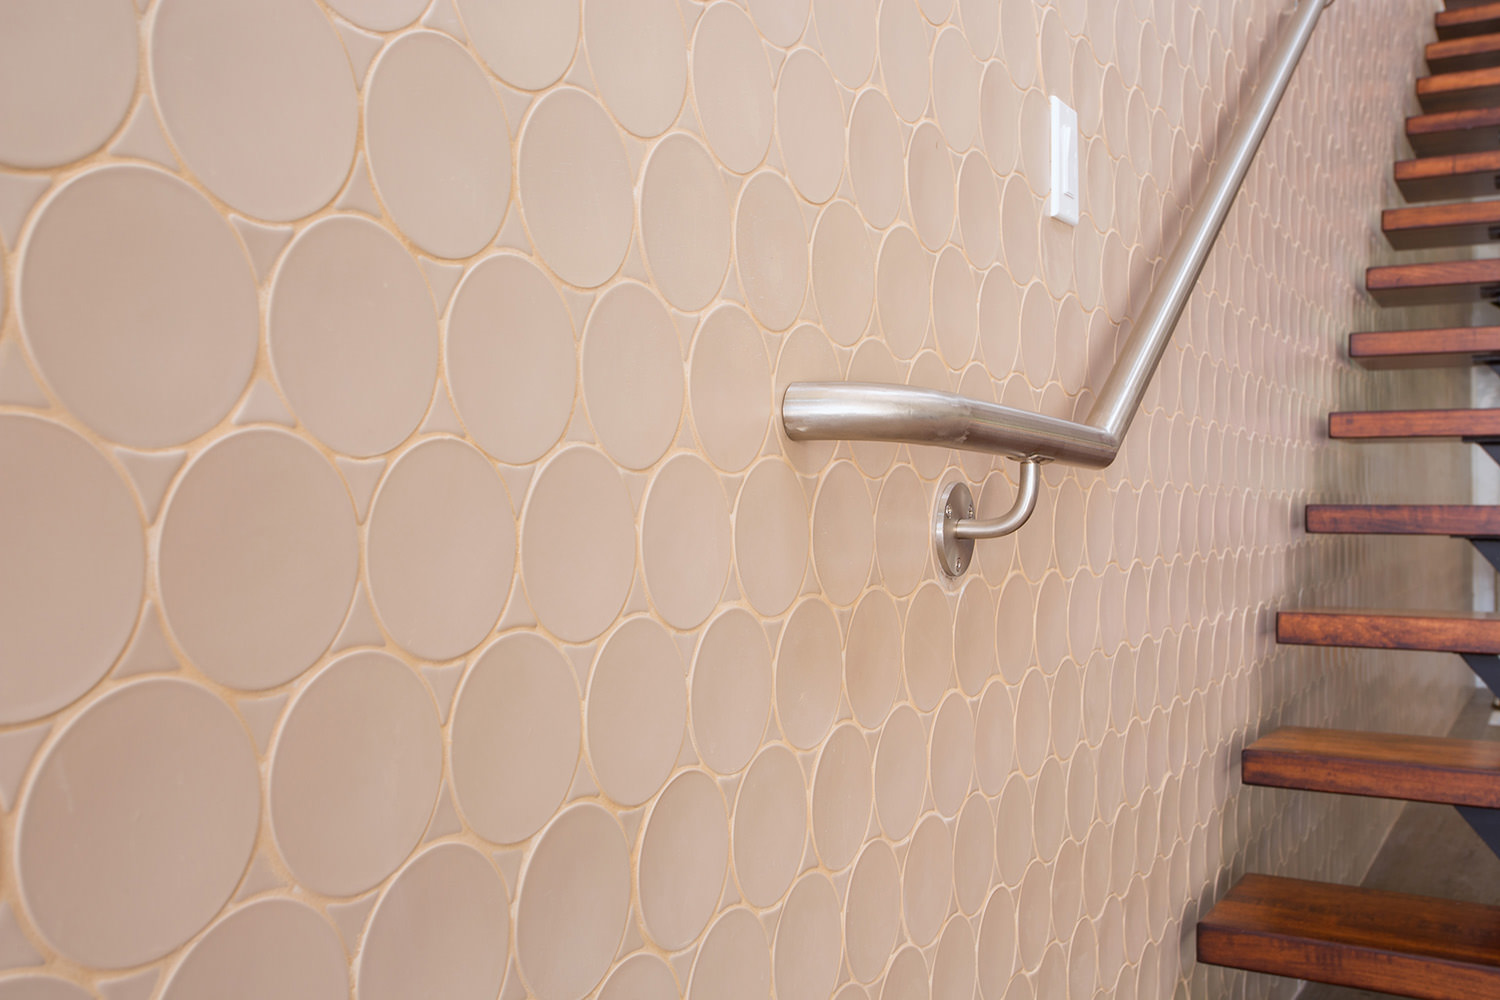 custom-tile-interior-design-los-altos-california-ktj-design-co-2.jpg